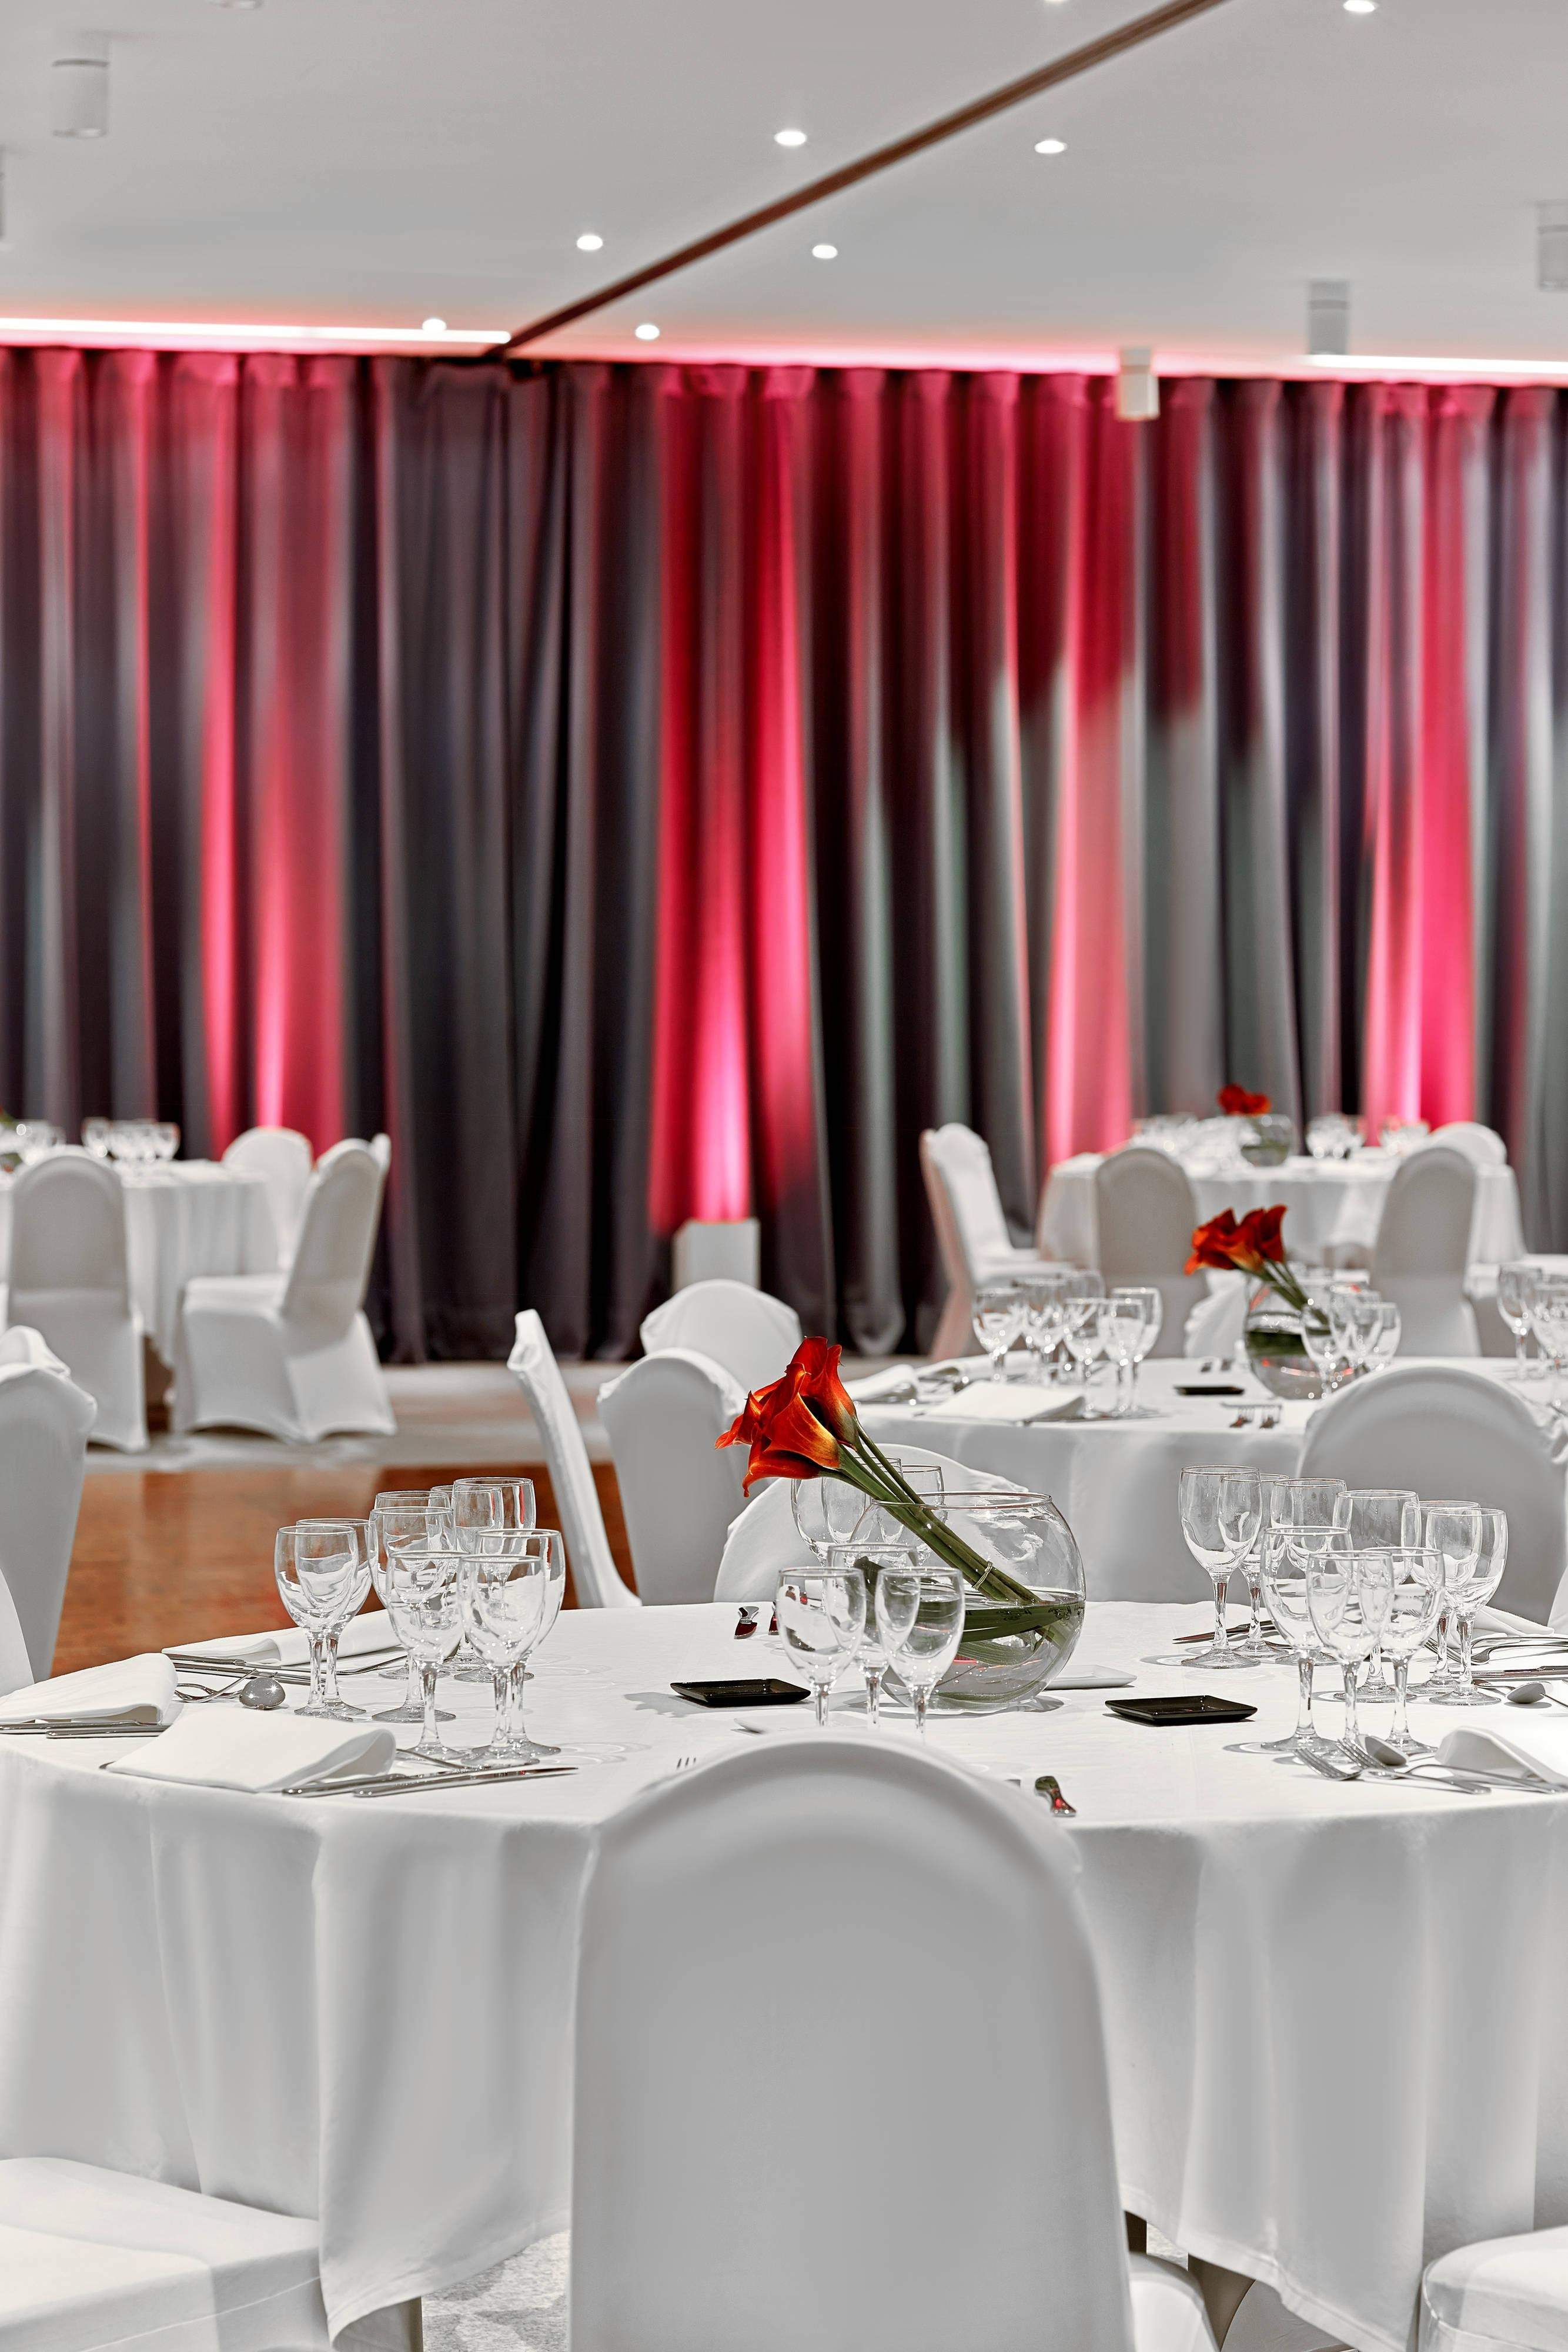 Wagram - Diner Round Tables